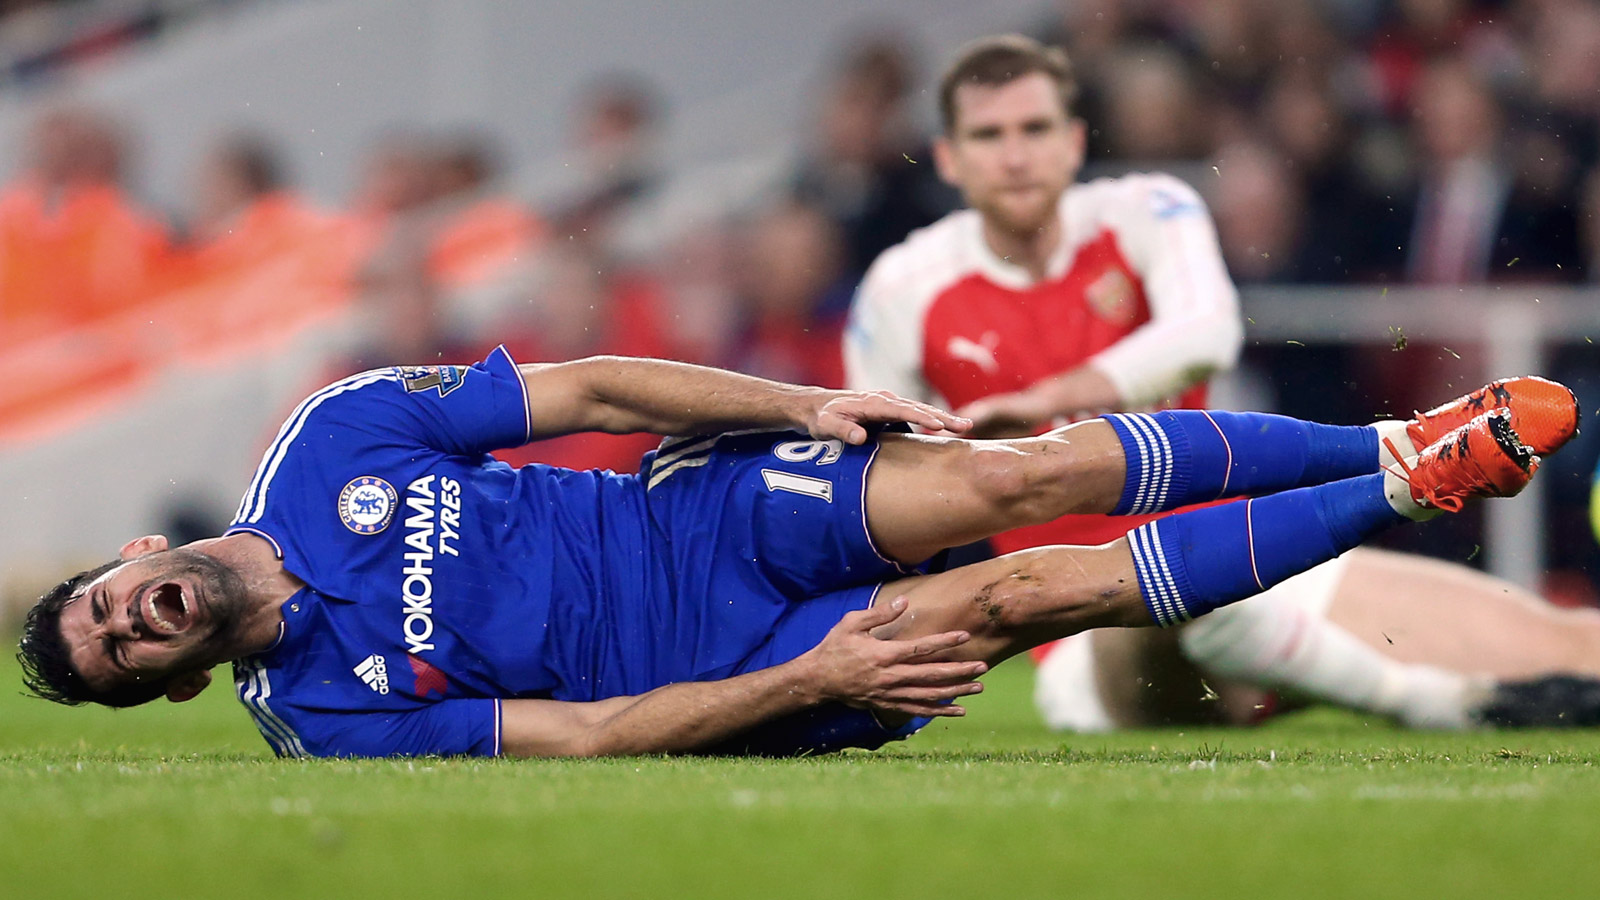 Arsenal boss Wenger labels Chelsea striker Costa 'clever'